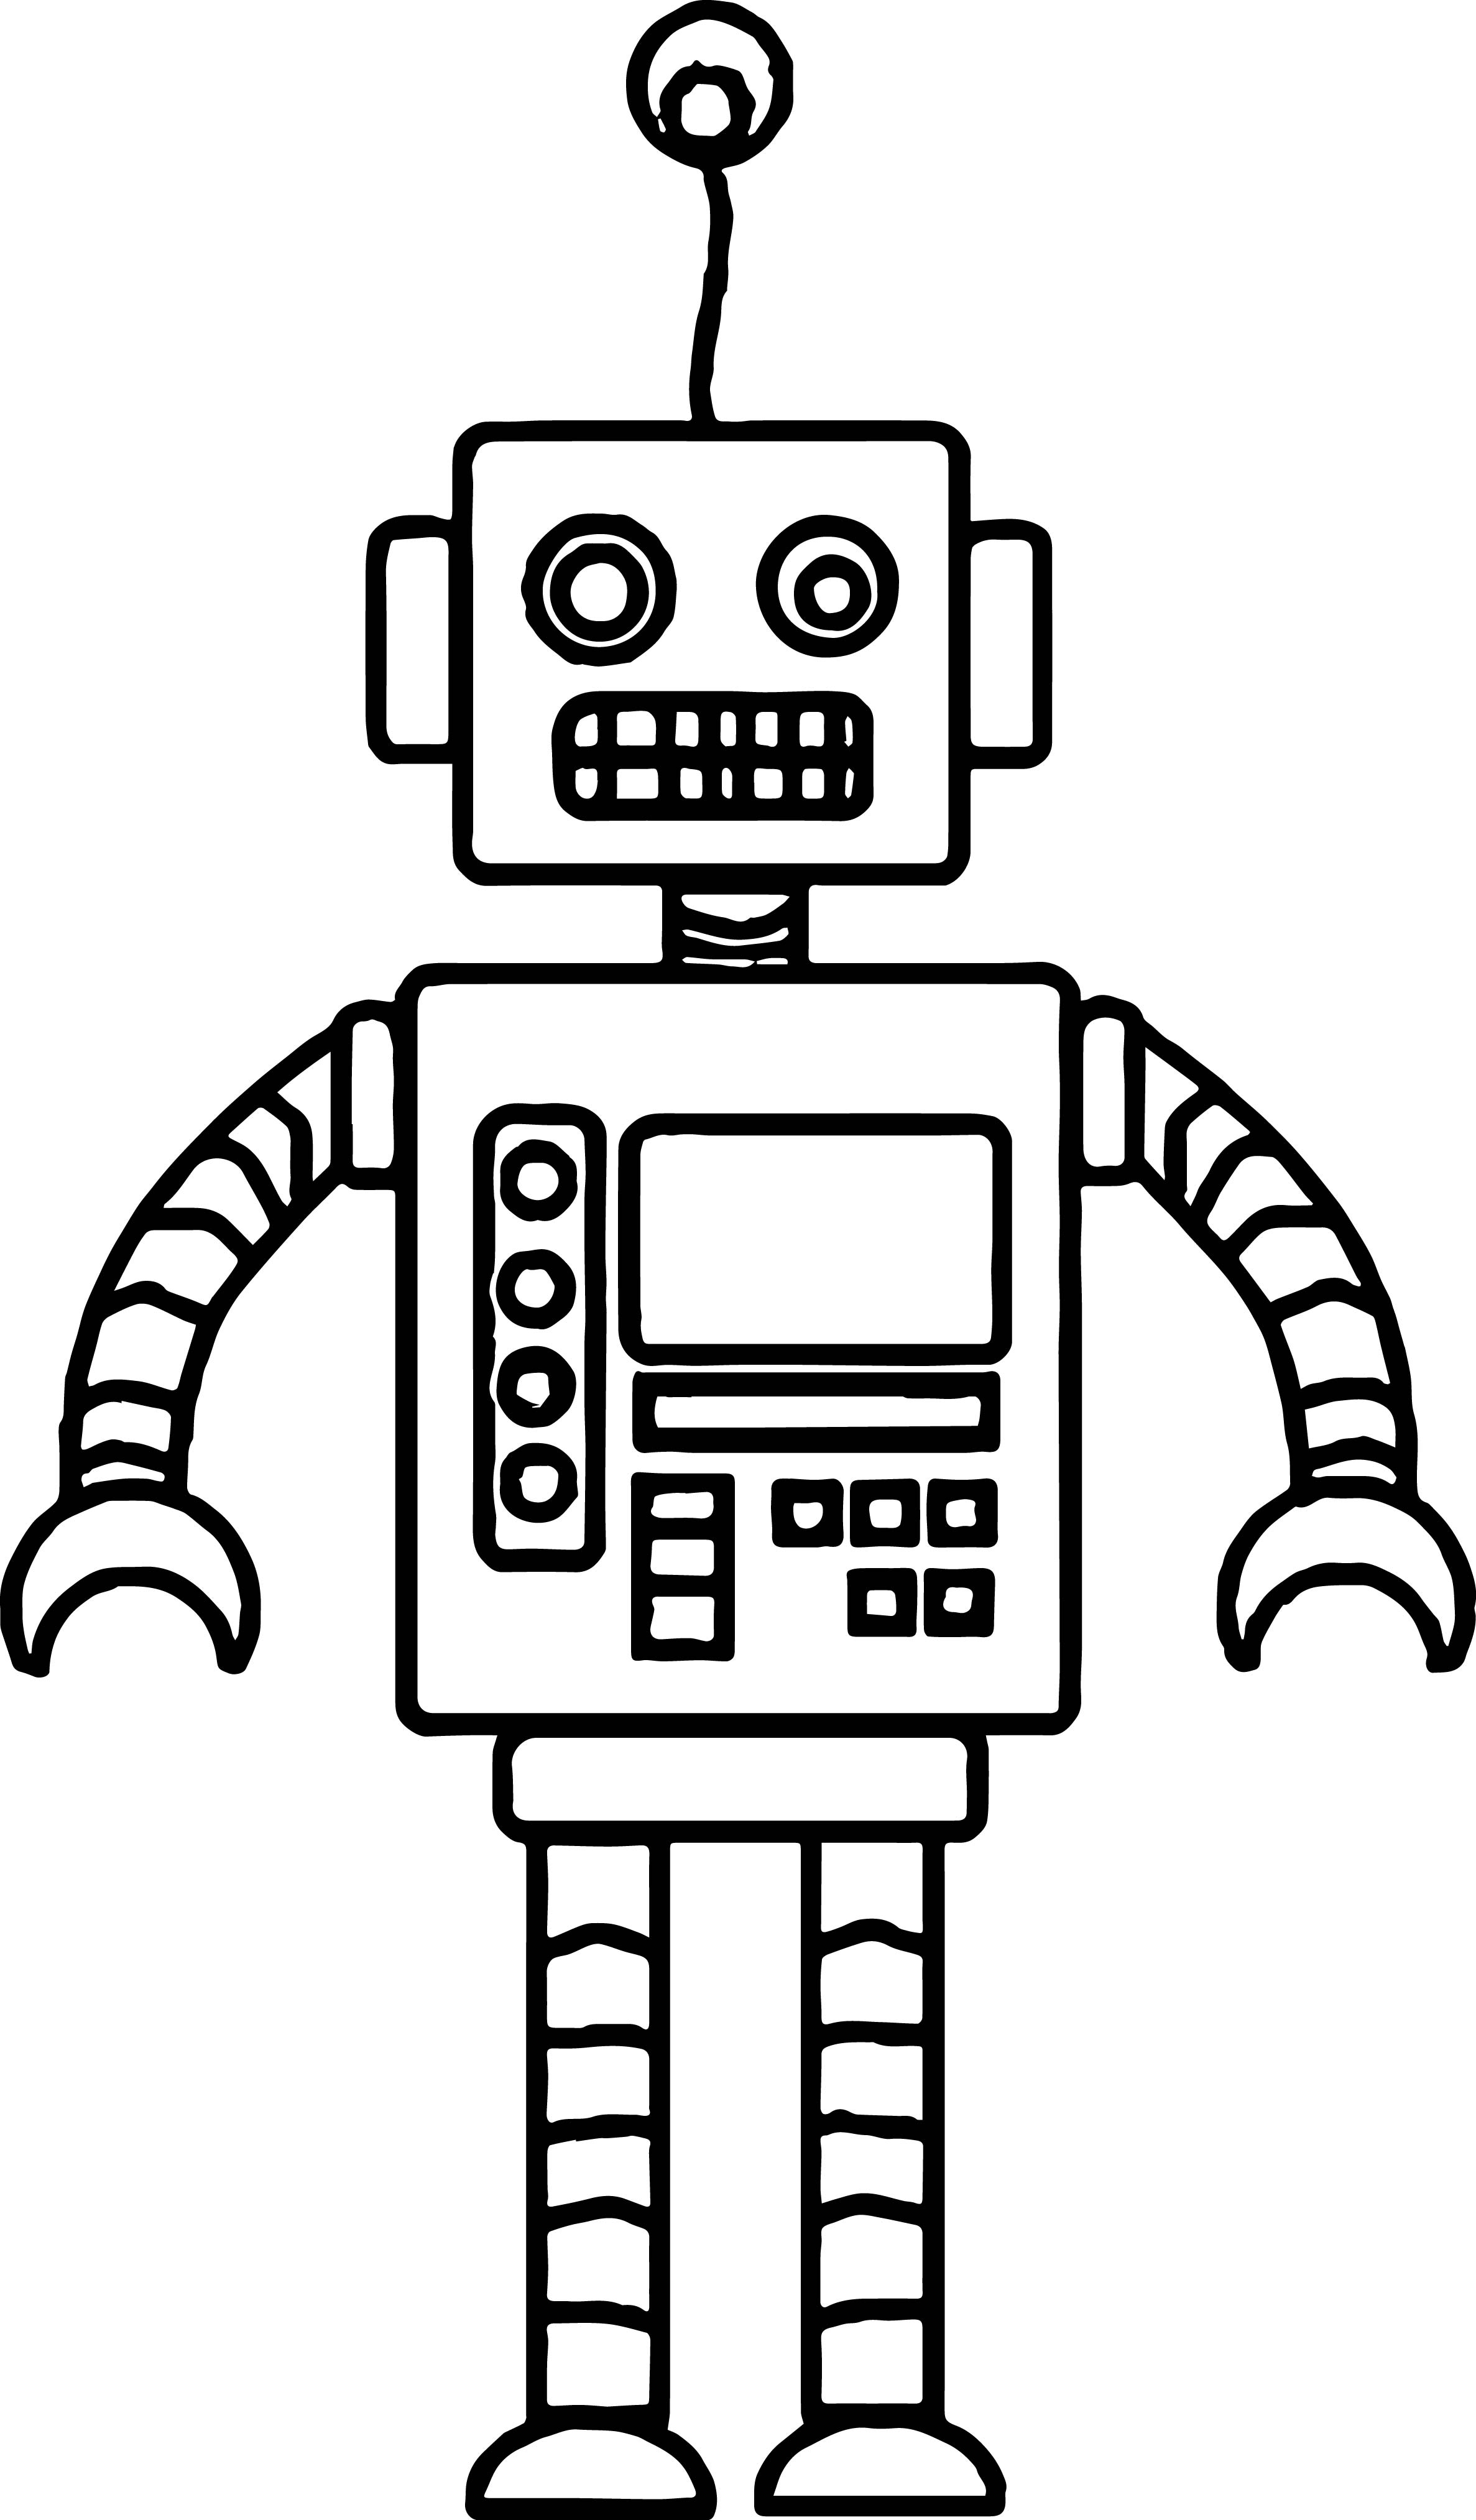 Crazy Robot Coloring Page